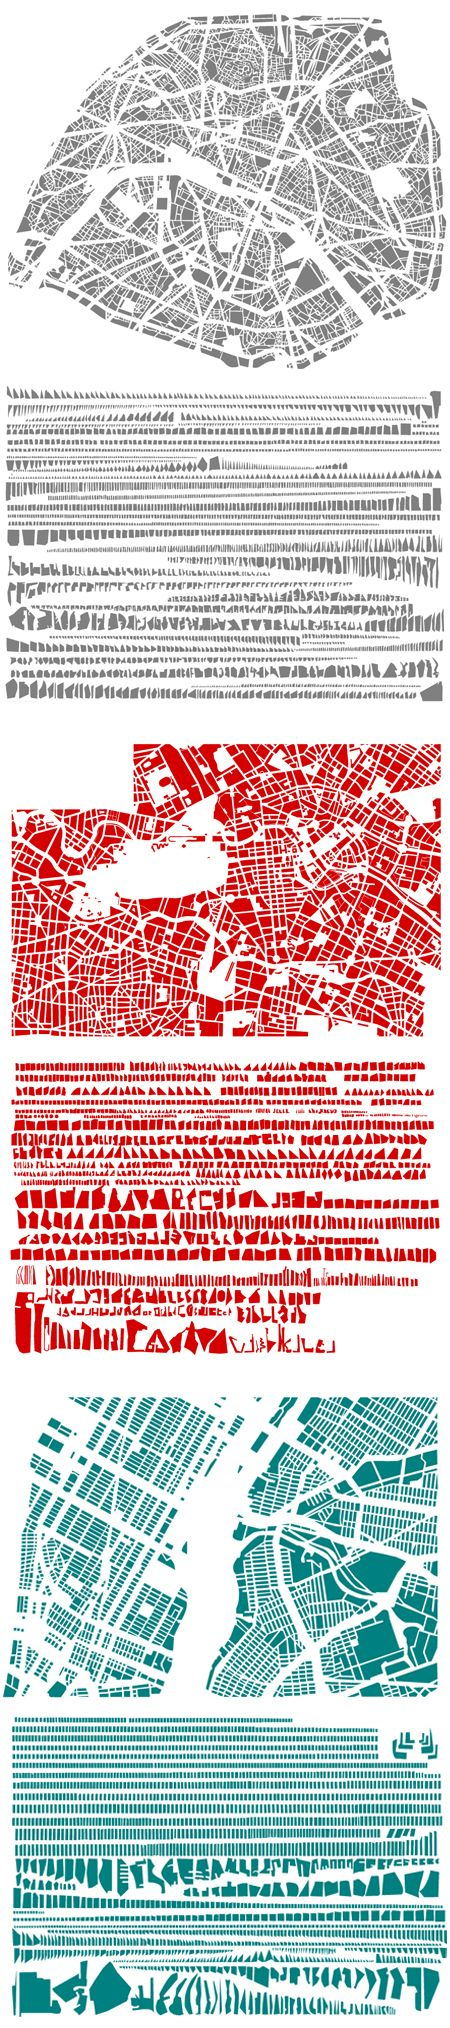 : Deconstructive Cities, Artist Armelle, Artistic Map, City Illustration, Deconstructed Cities